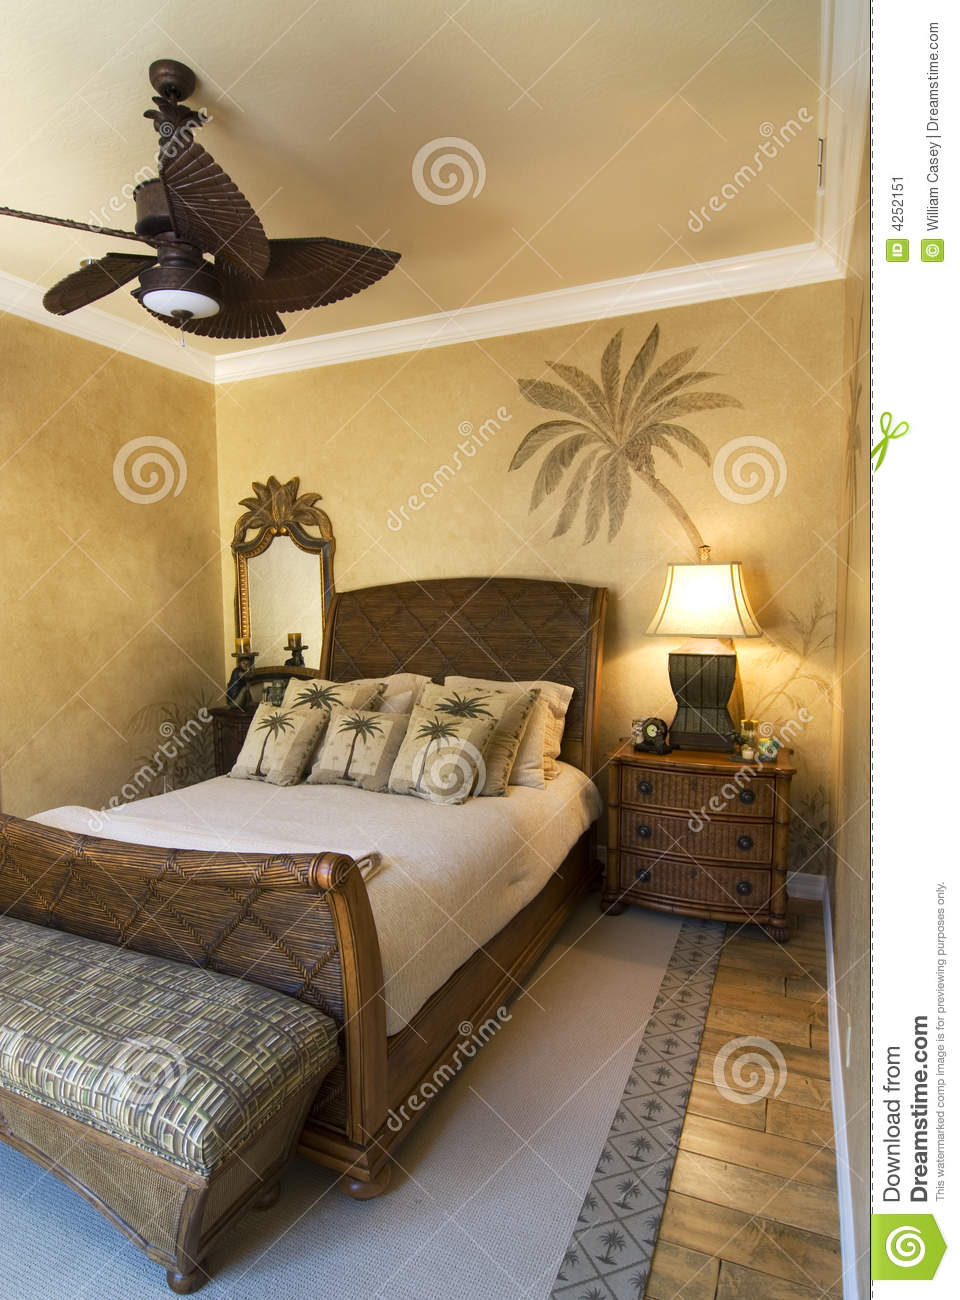 Palm Tree Bedroom Stock Image Image Of Cushions Rattan